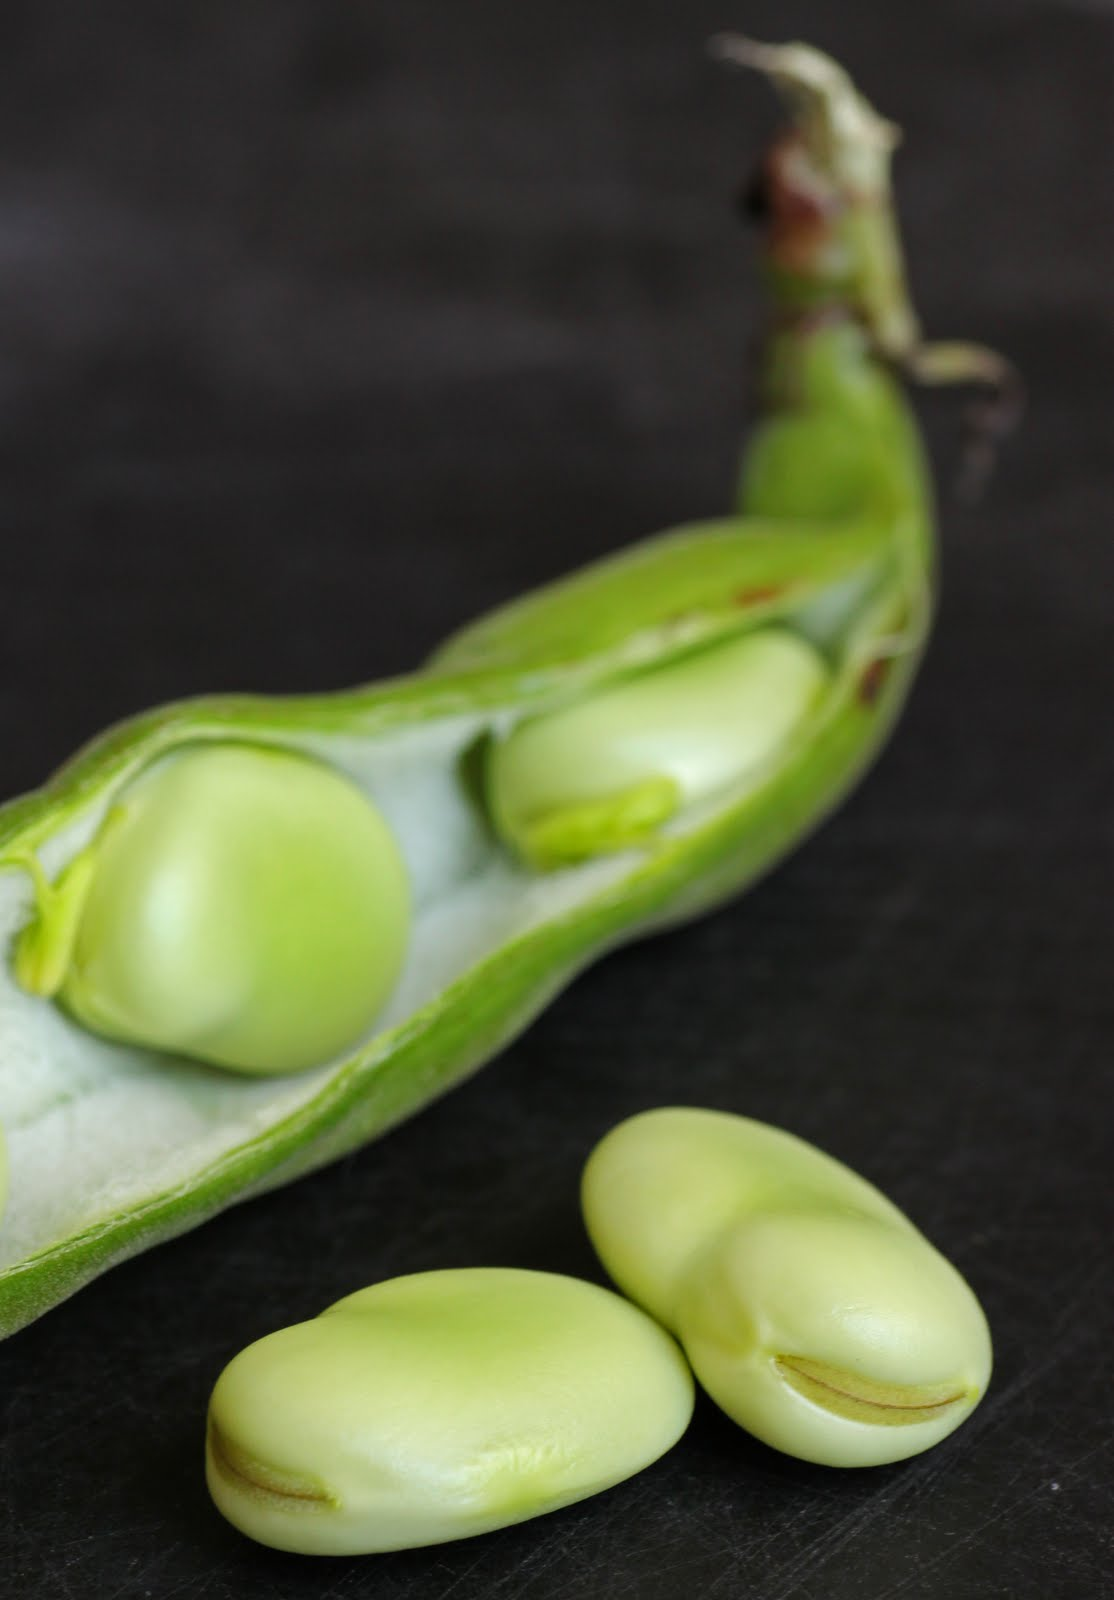 Fava beans in the pod.